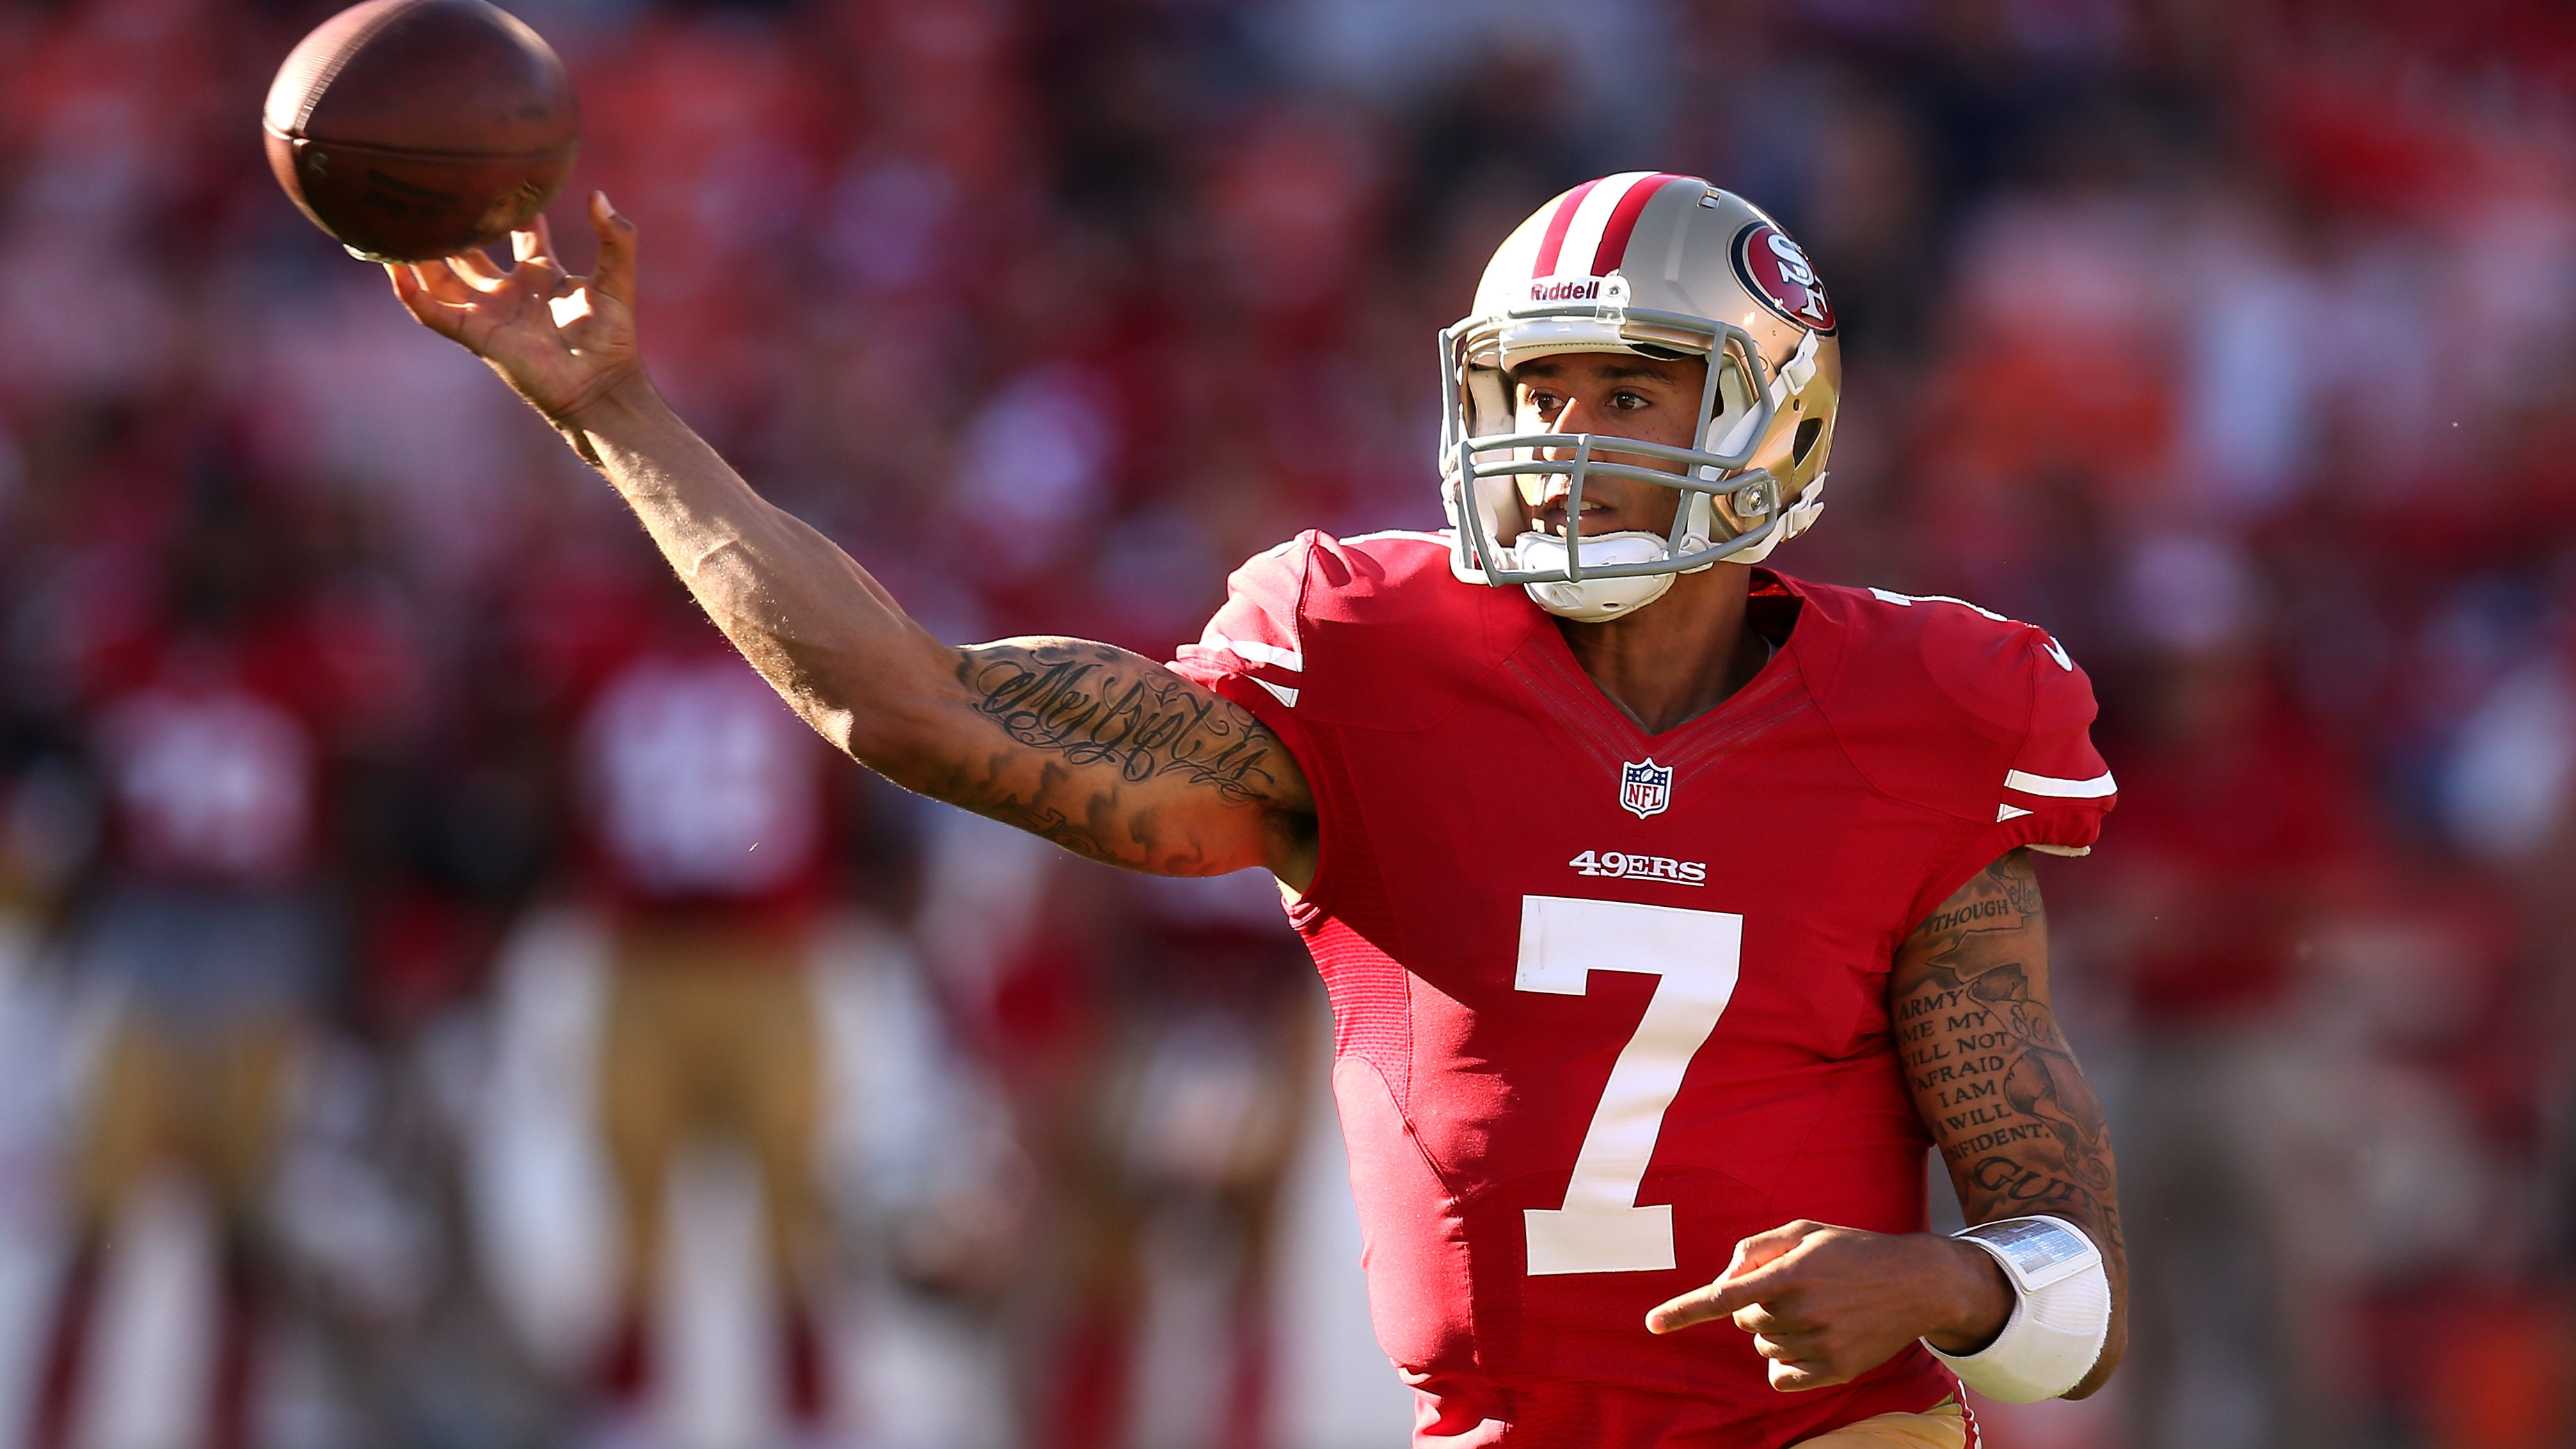 San Francisco 49ers Colin Kaepernick Wallpaper 55985 3702x2082